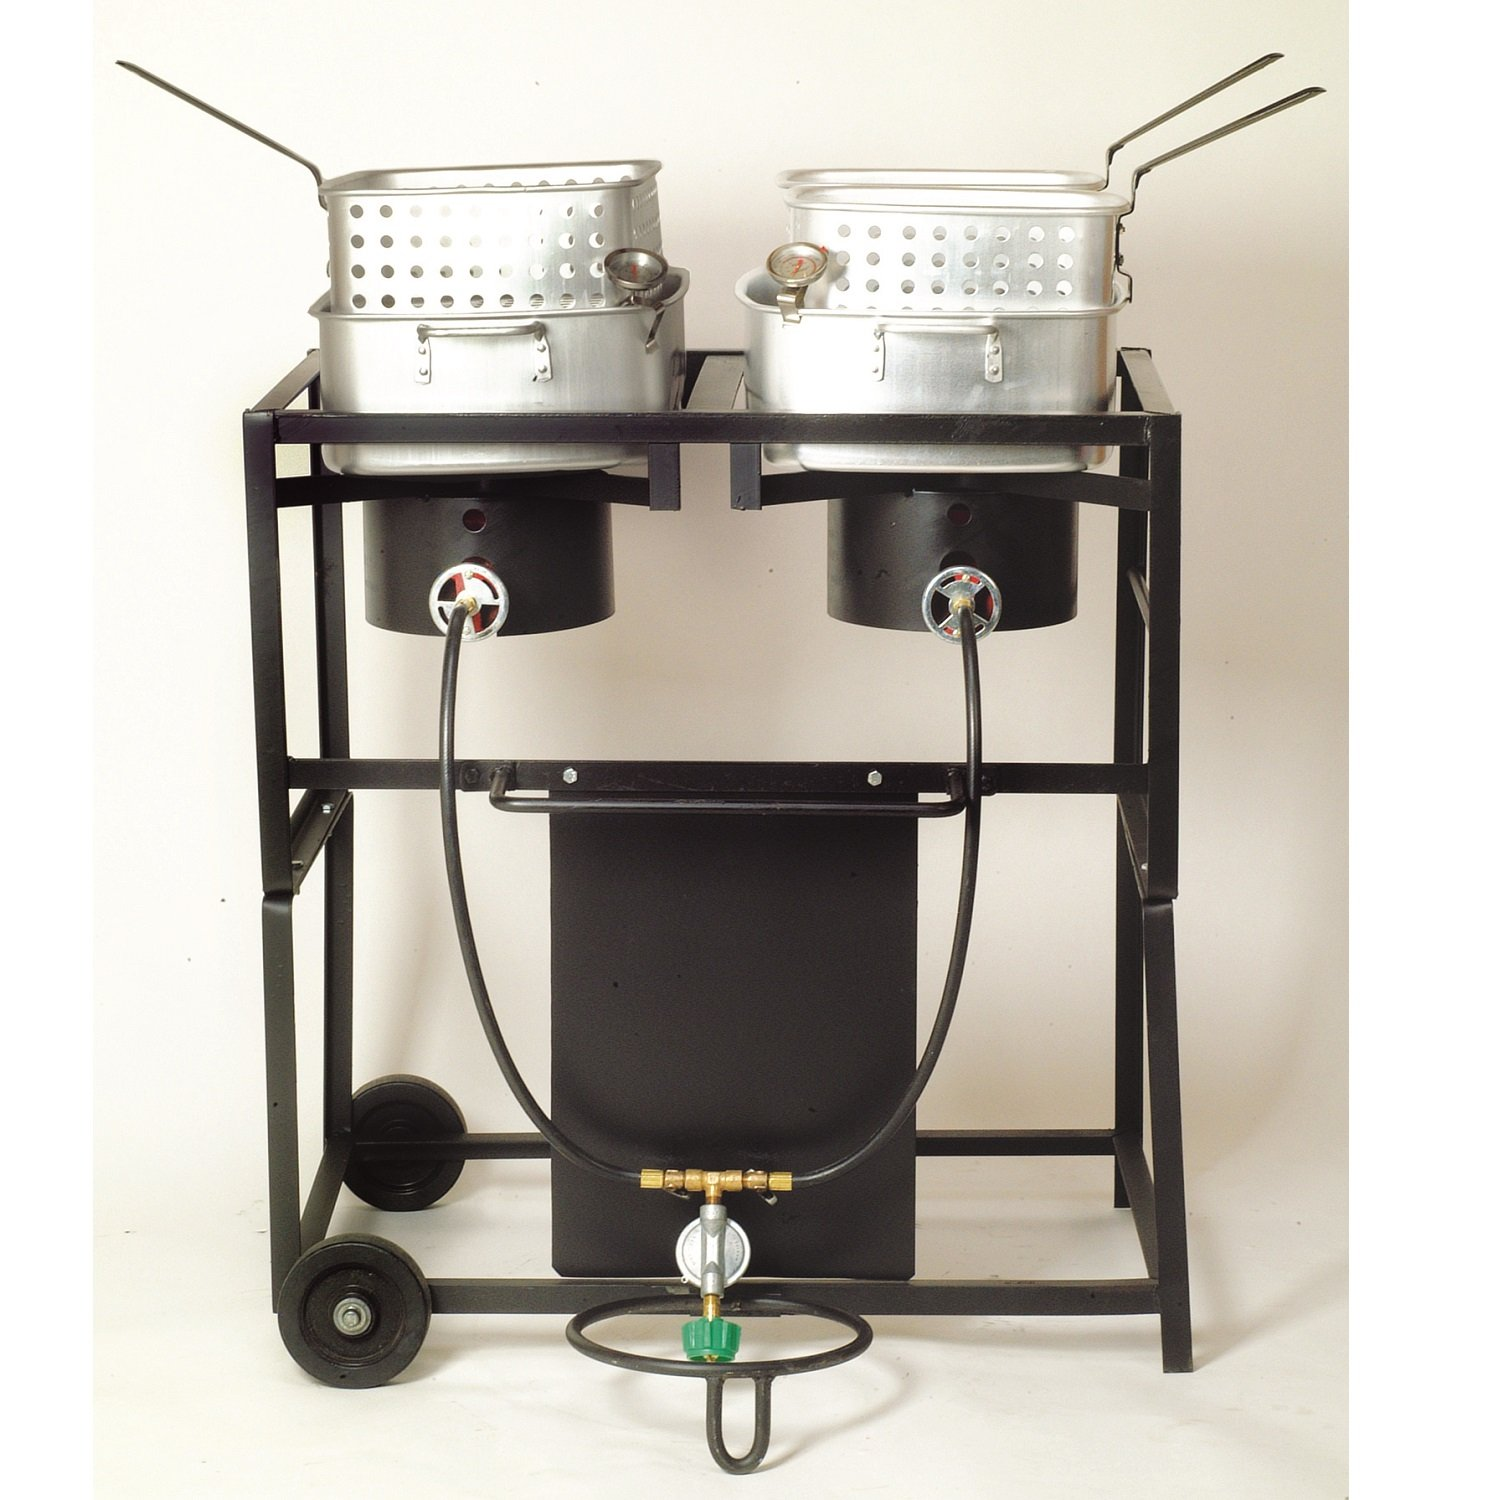 King cooker with Dual Frying Baskets